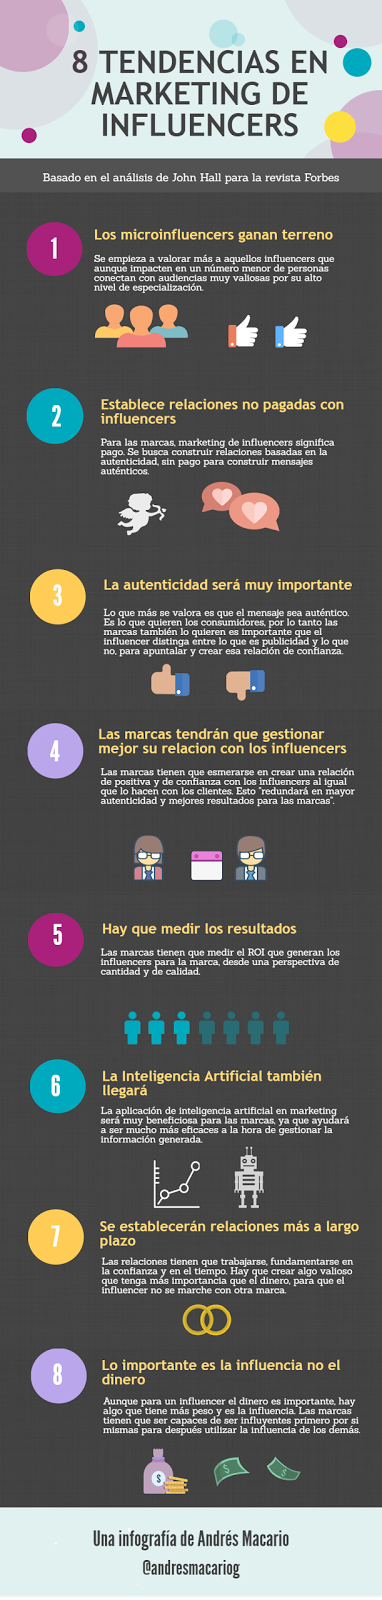 8 Tendencias en Marketing de influencers [Infografía]